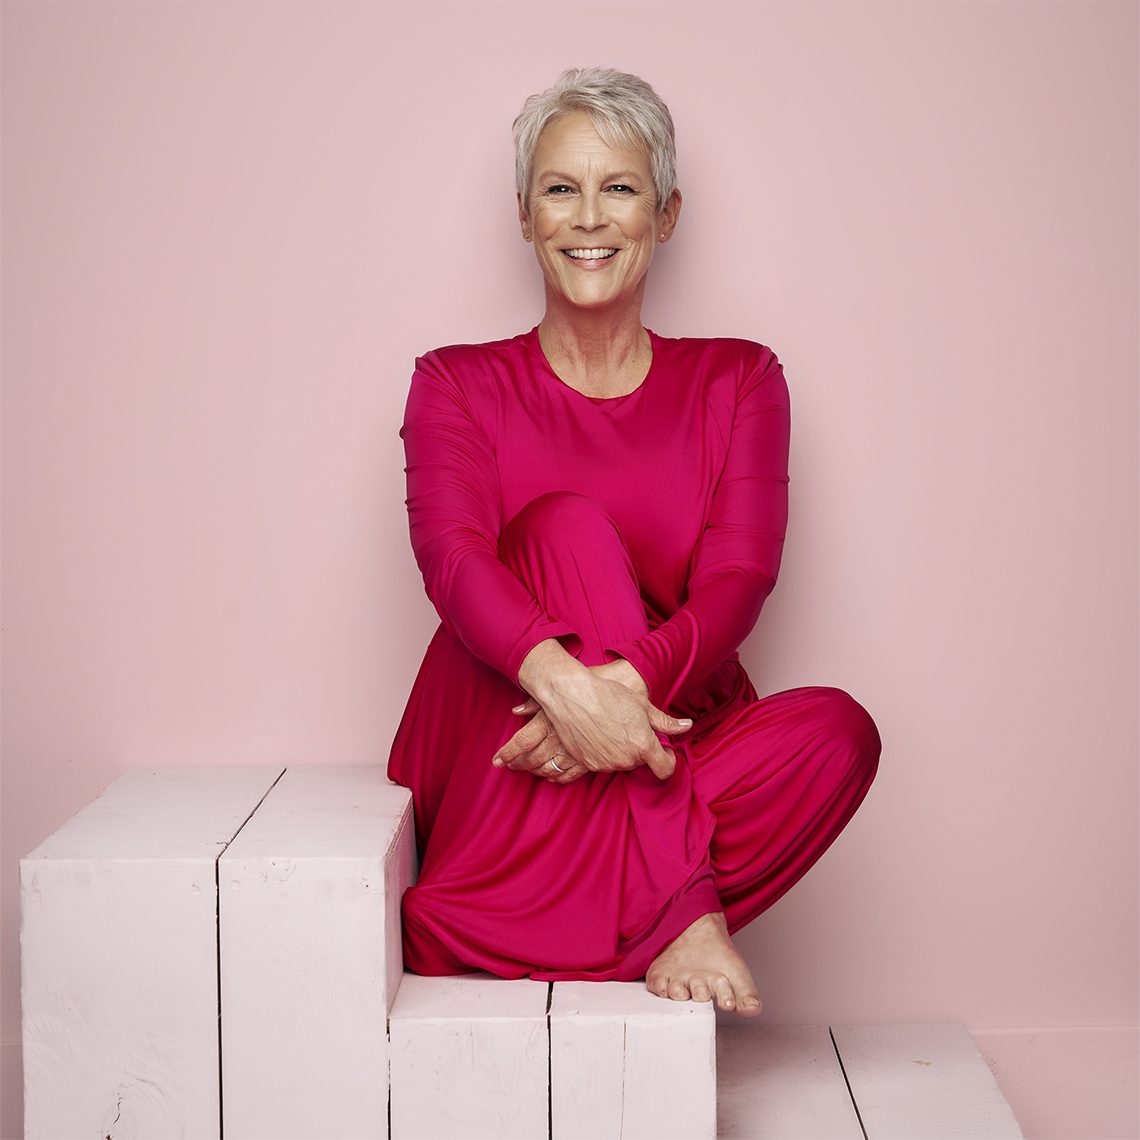 actress jamie lee curtis casually seated in a red dress